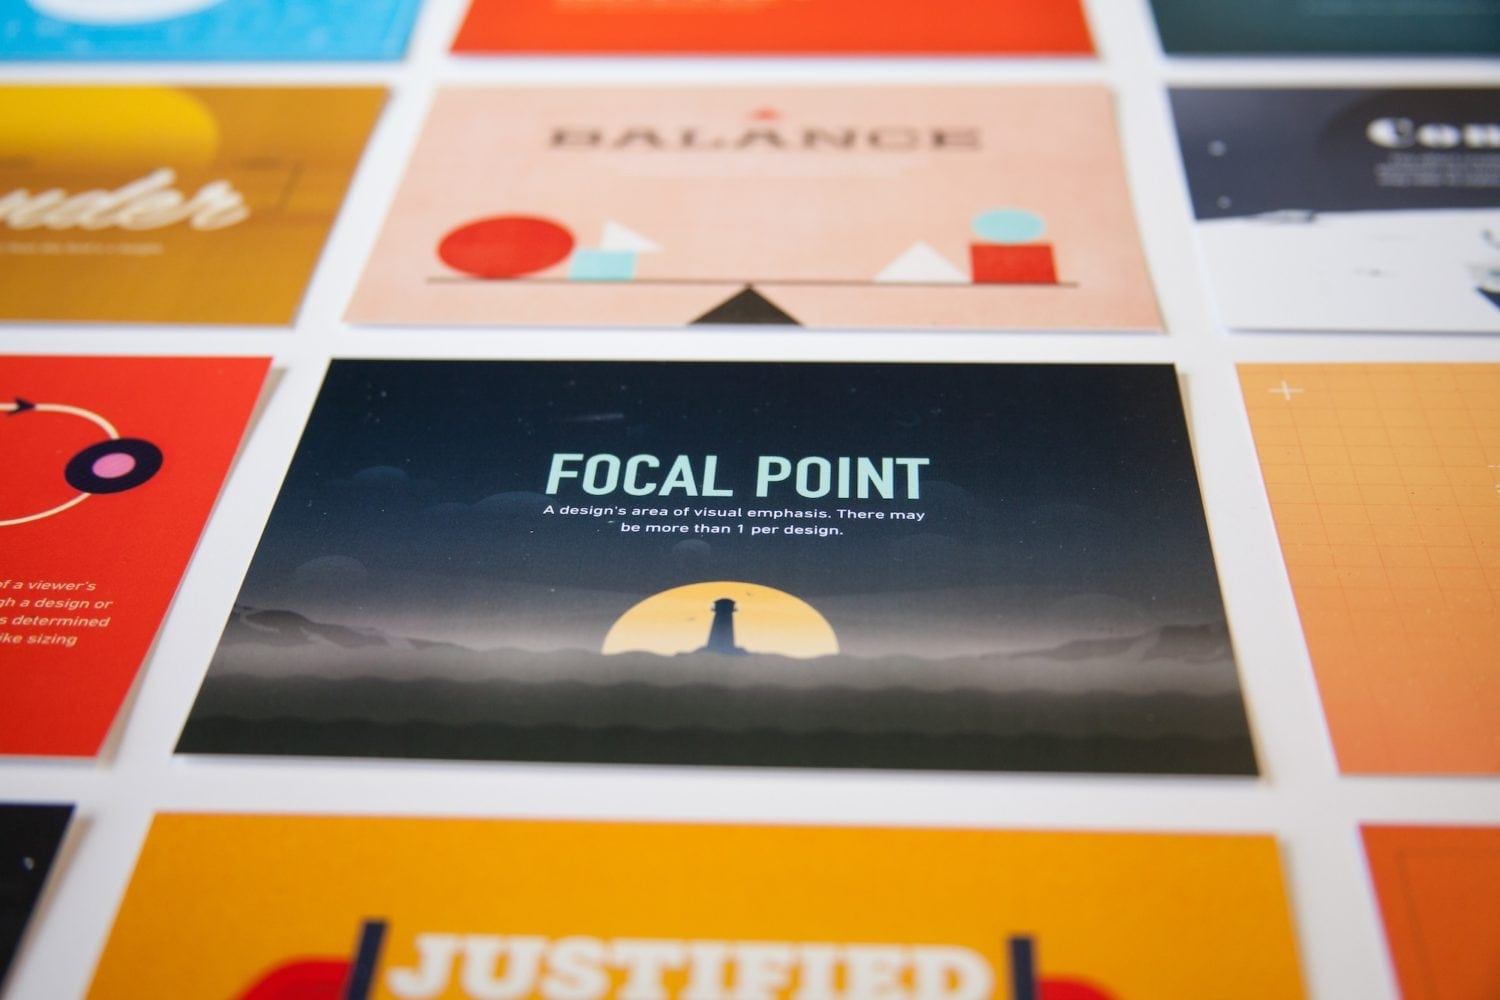 A set of postcards with differing design styles, fonts, and more